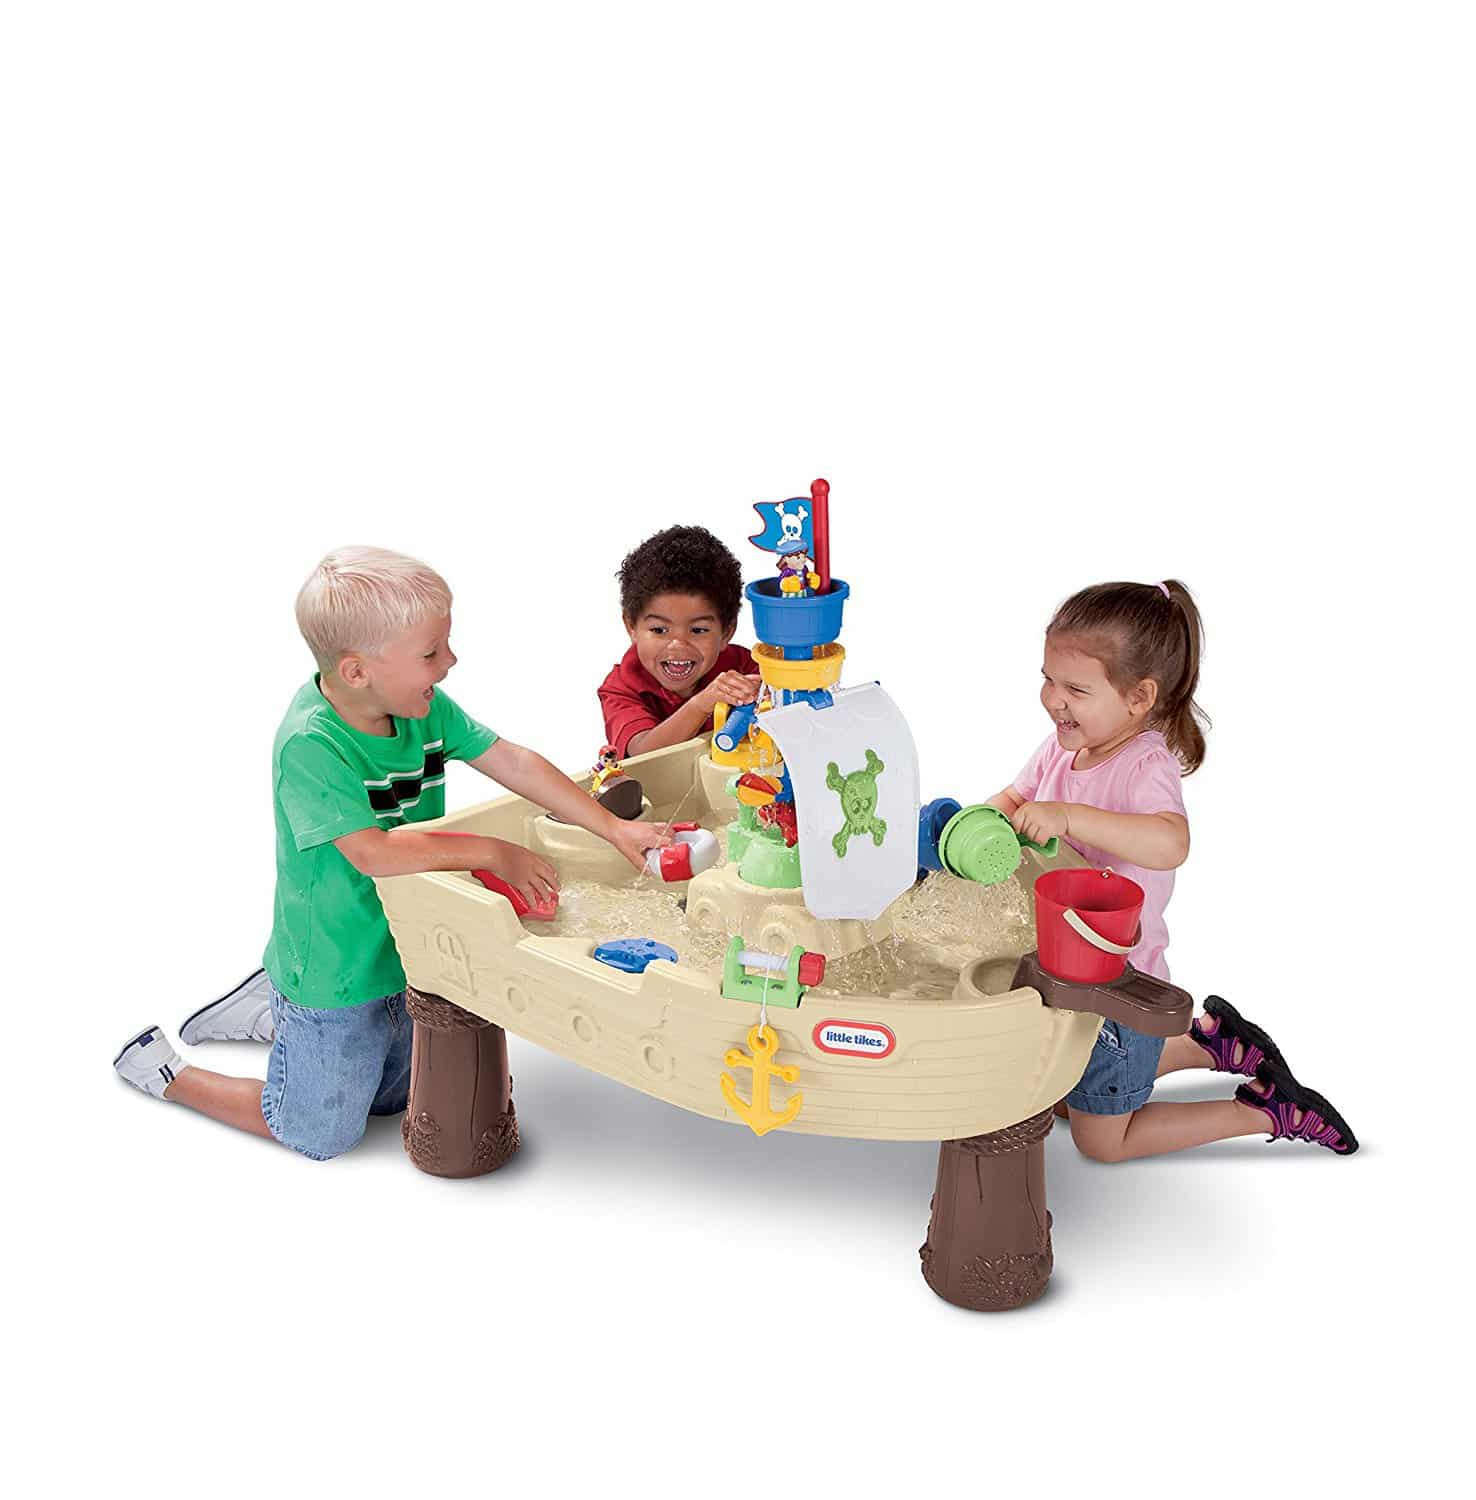 Top 10 Best Sand And Water Table Reviews in 2017